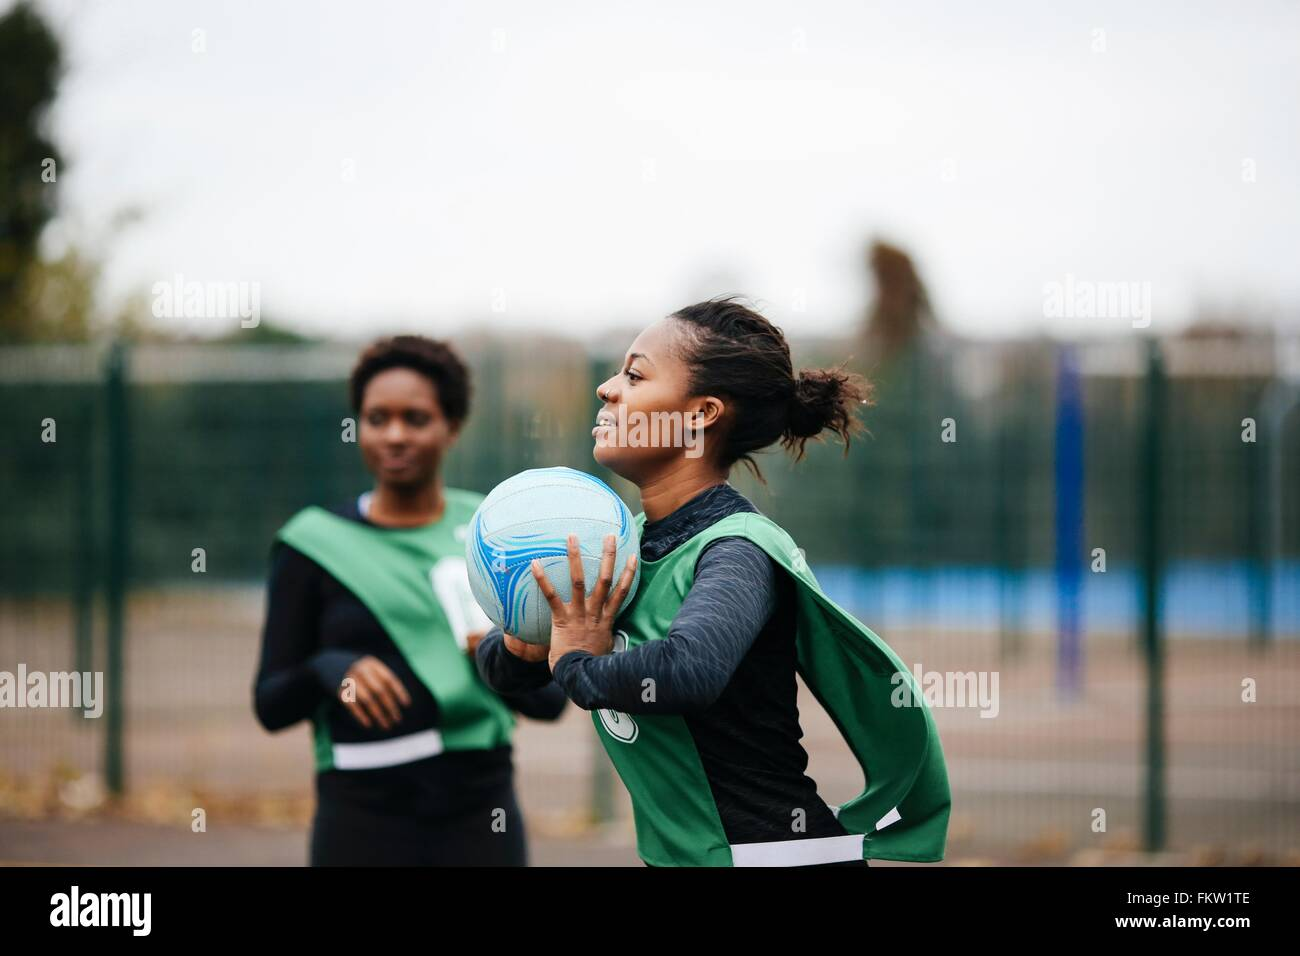 Young adult female netball player at play on netball court - Stock Image